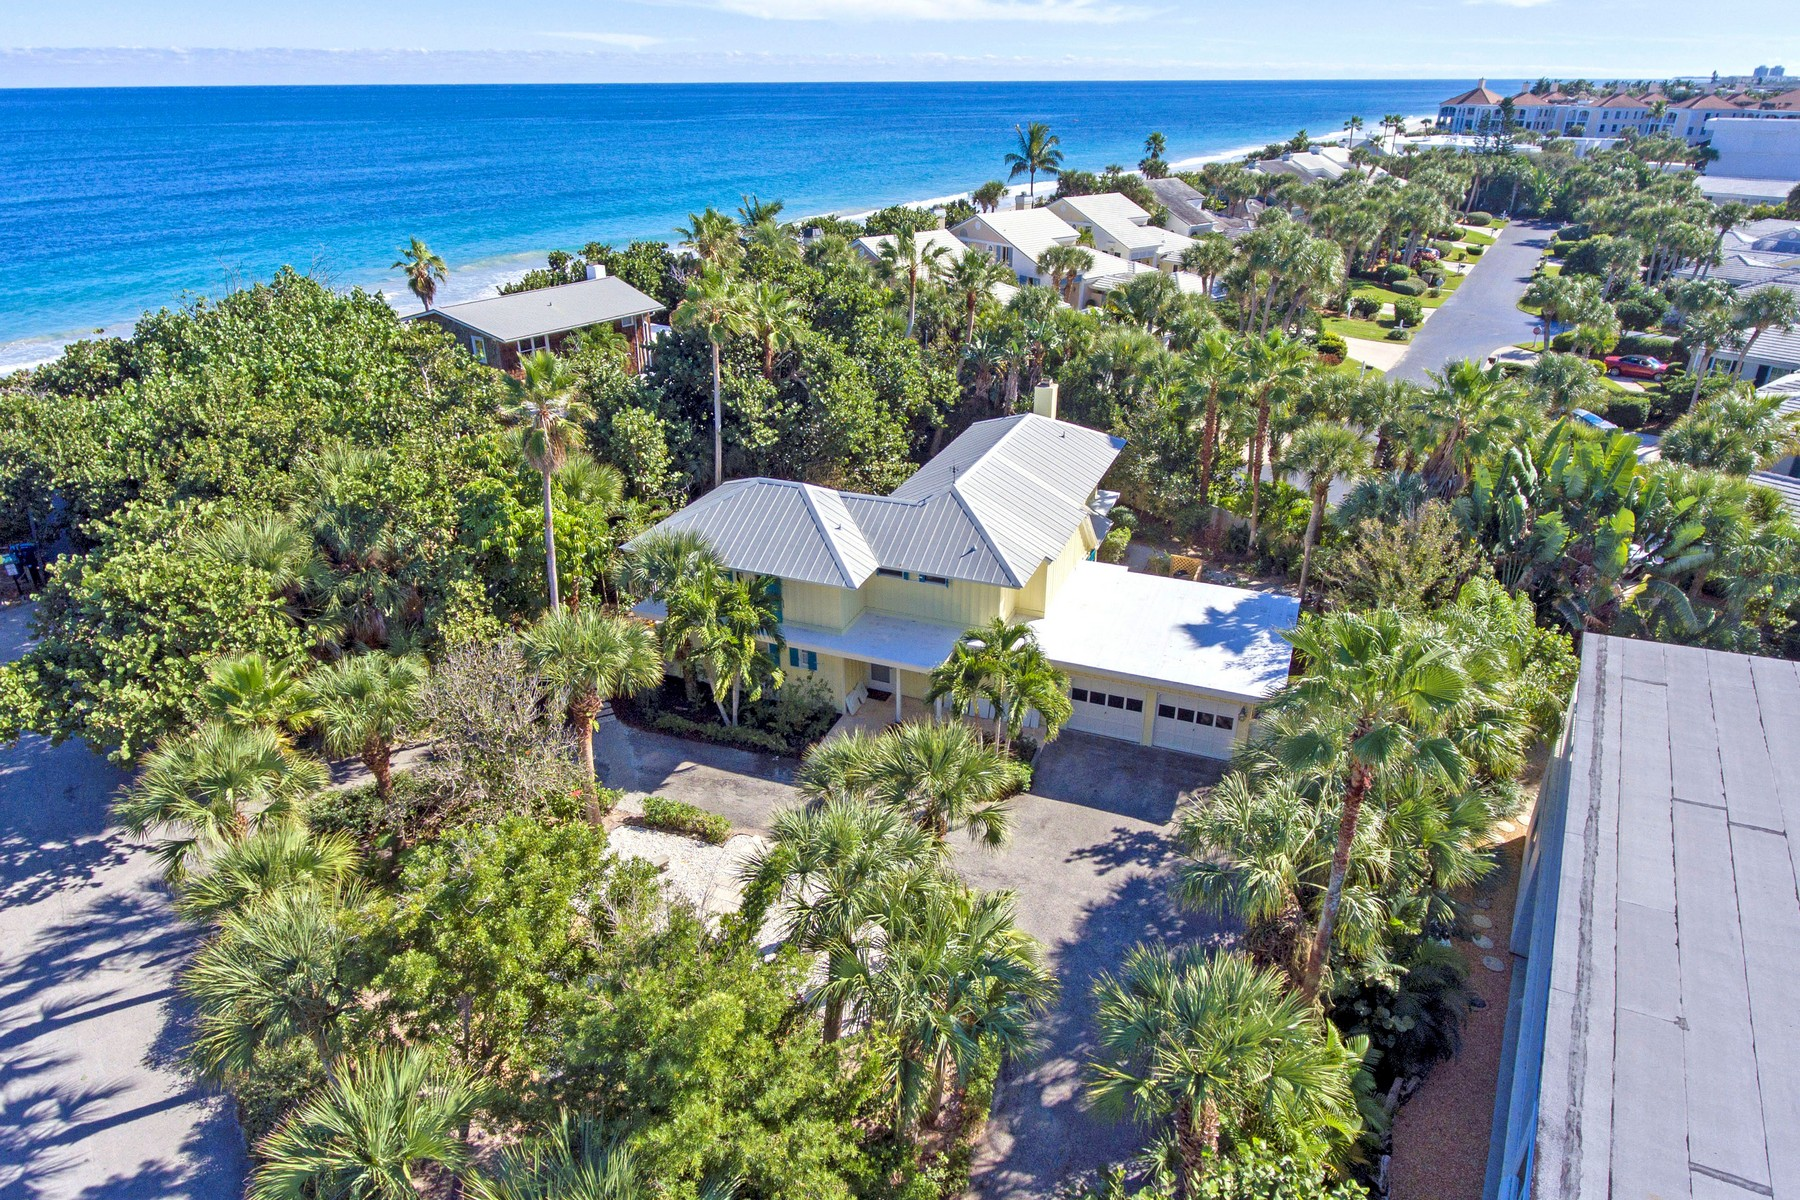 Single Family Homes for Sale at Beach House 975 Beachcomber Lane Vero Beach, Florida 32963 United States